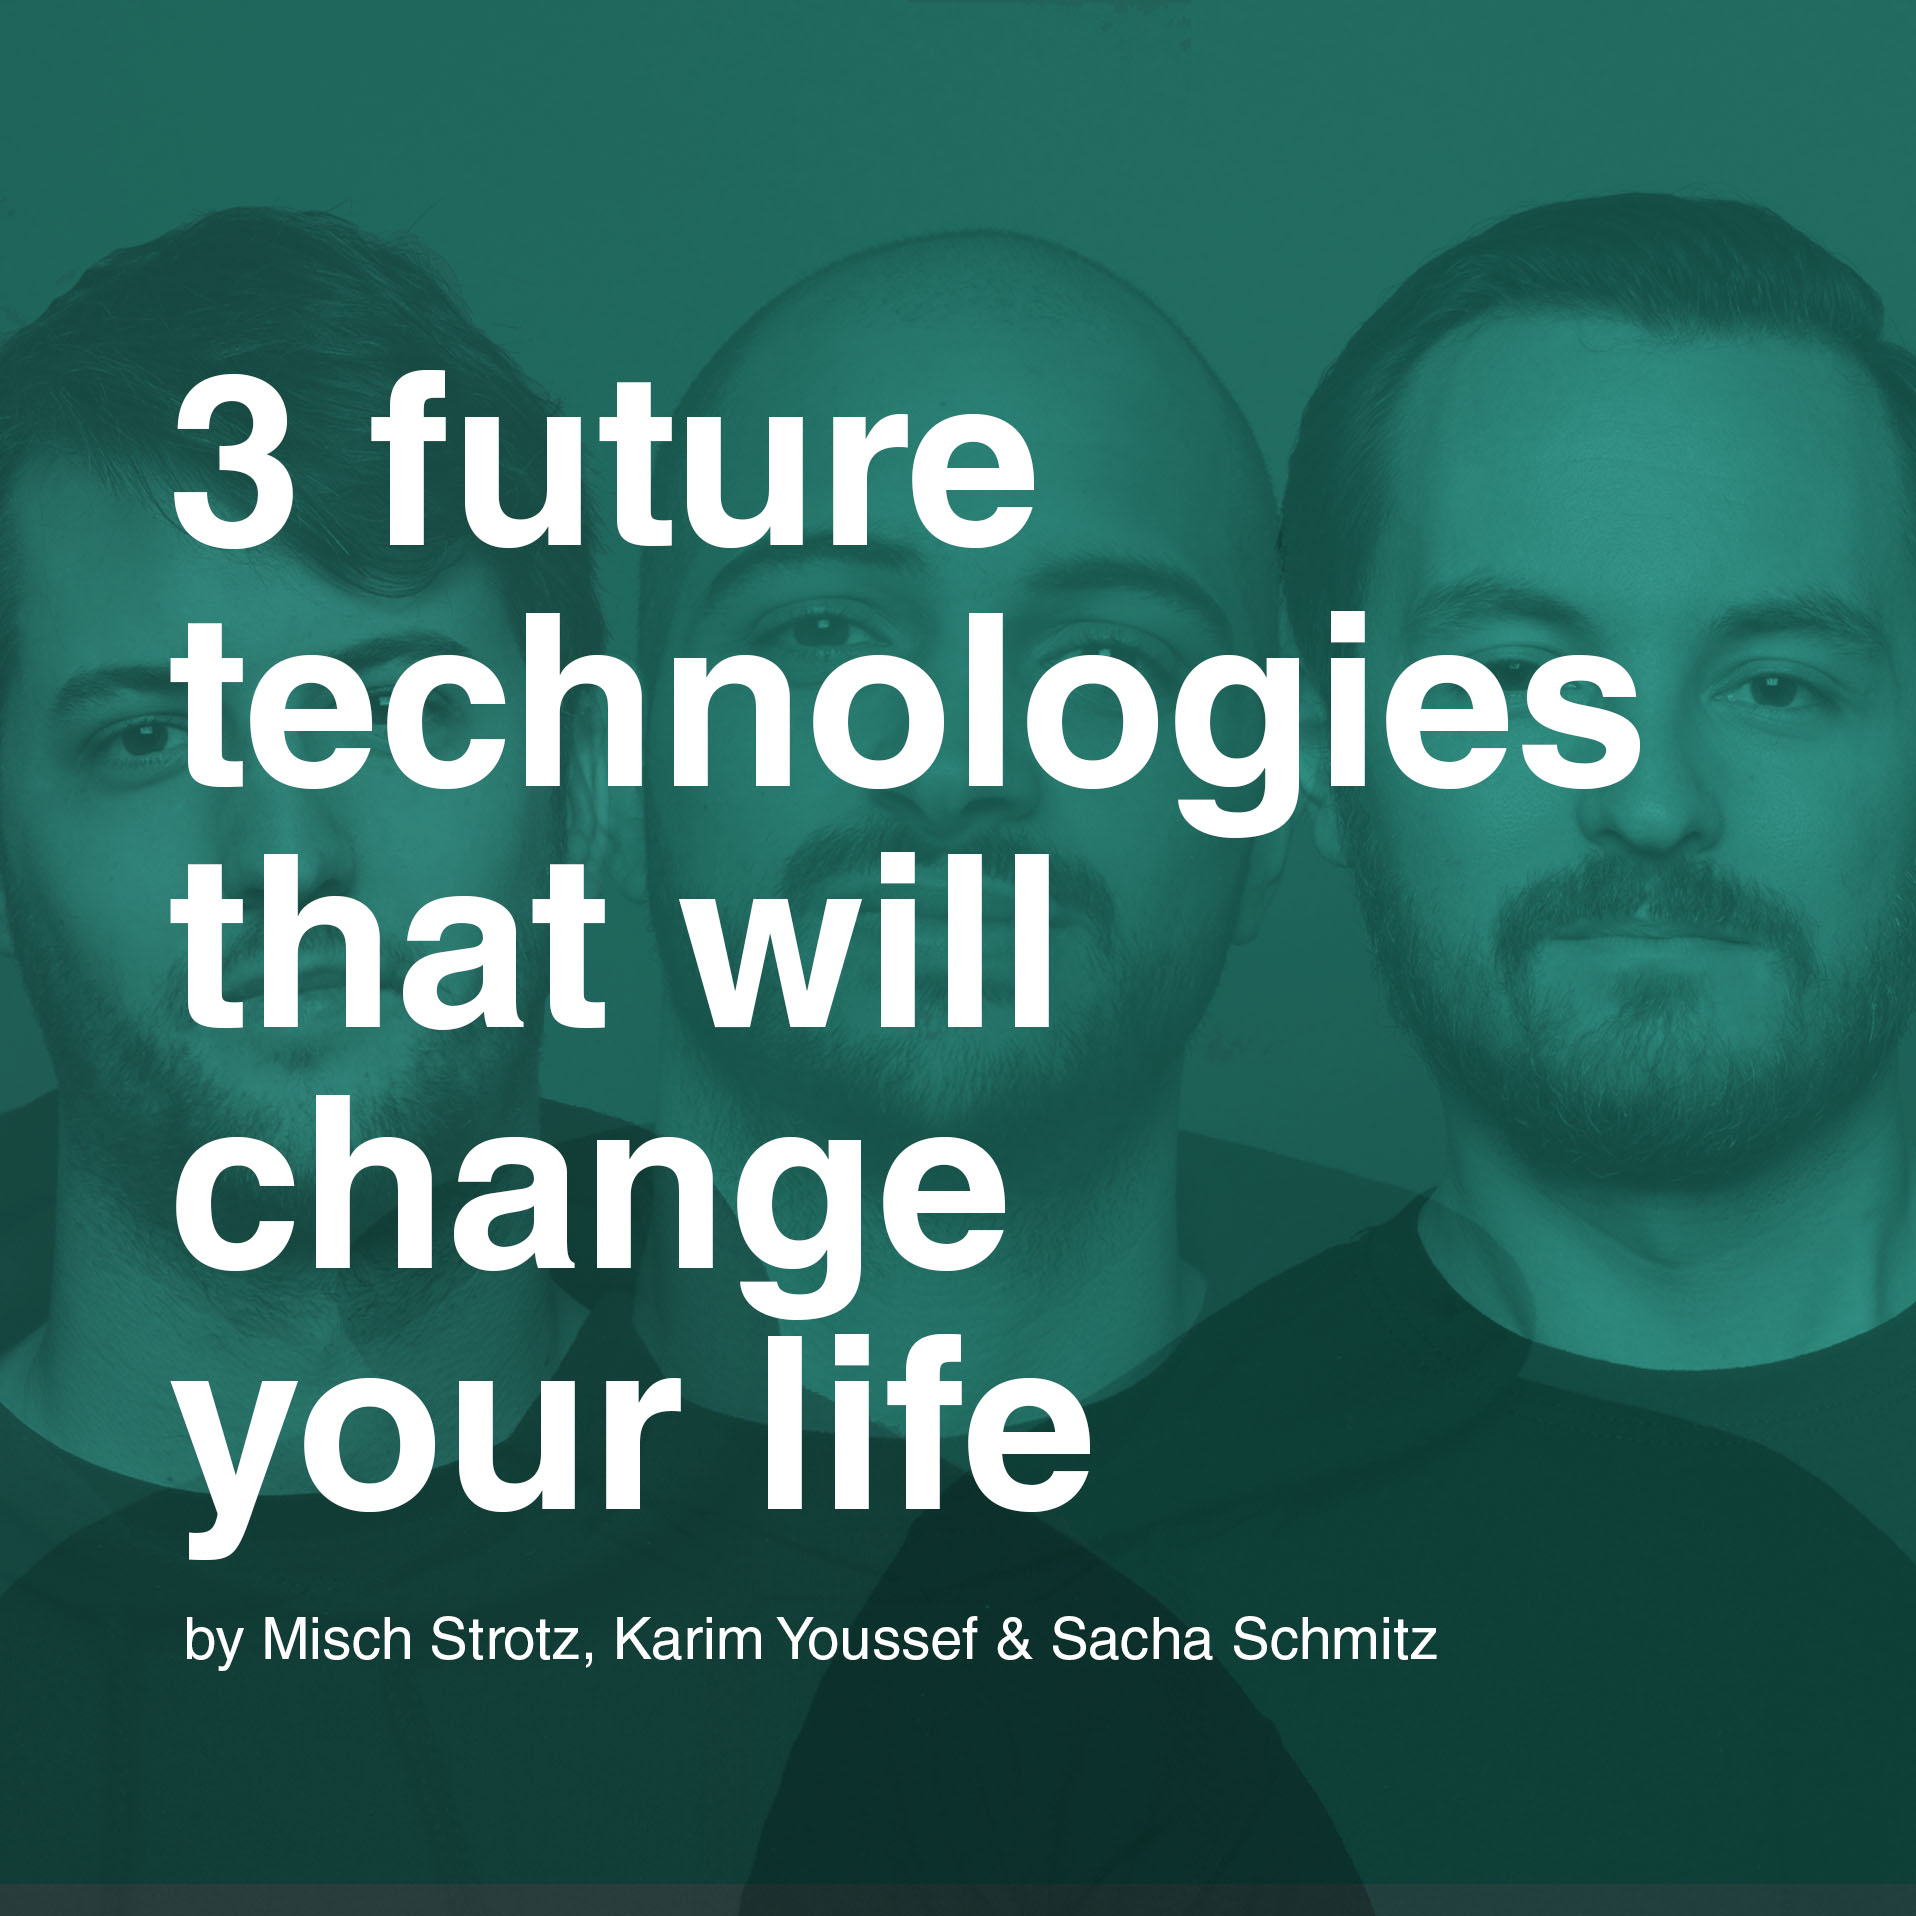 3 future technologies that will change your life